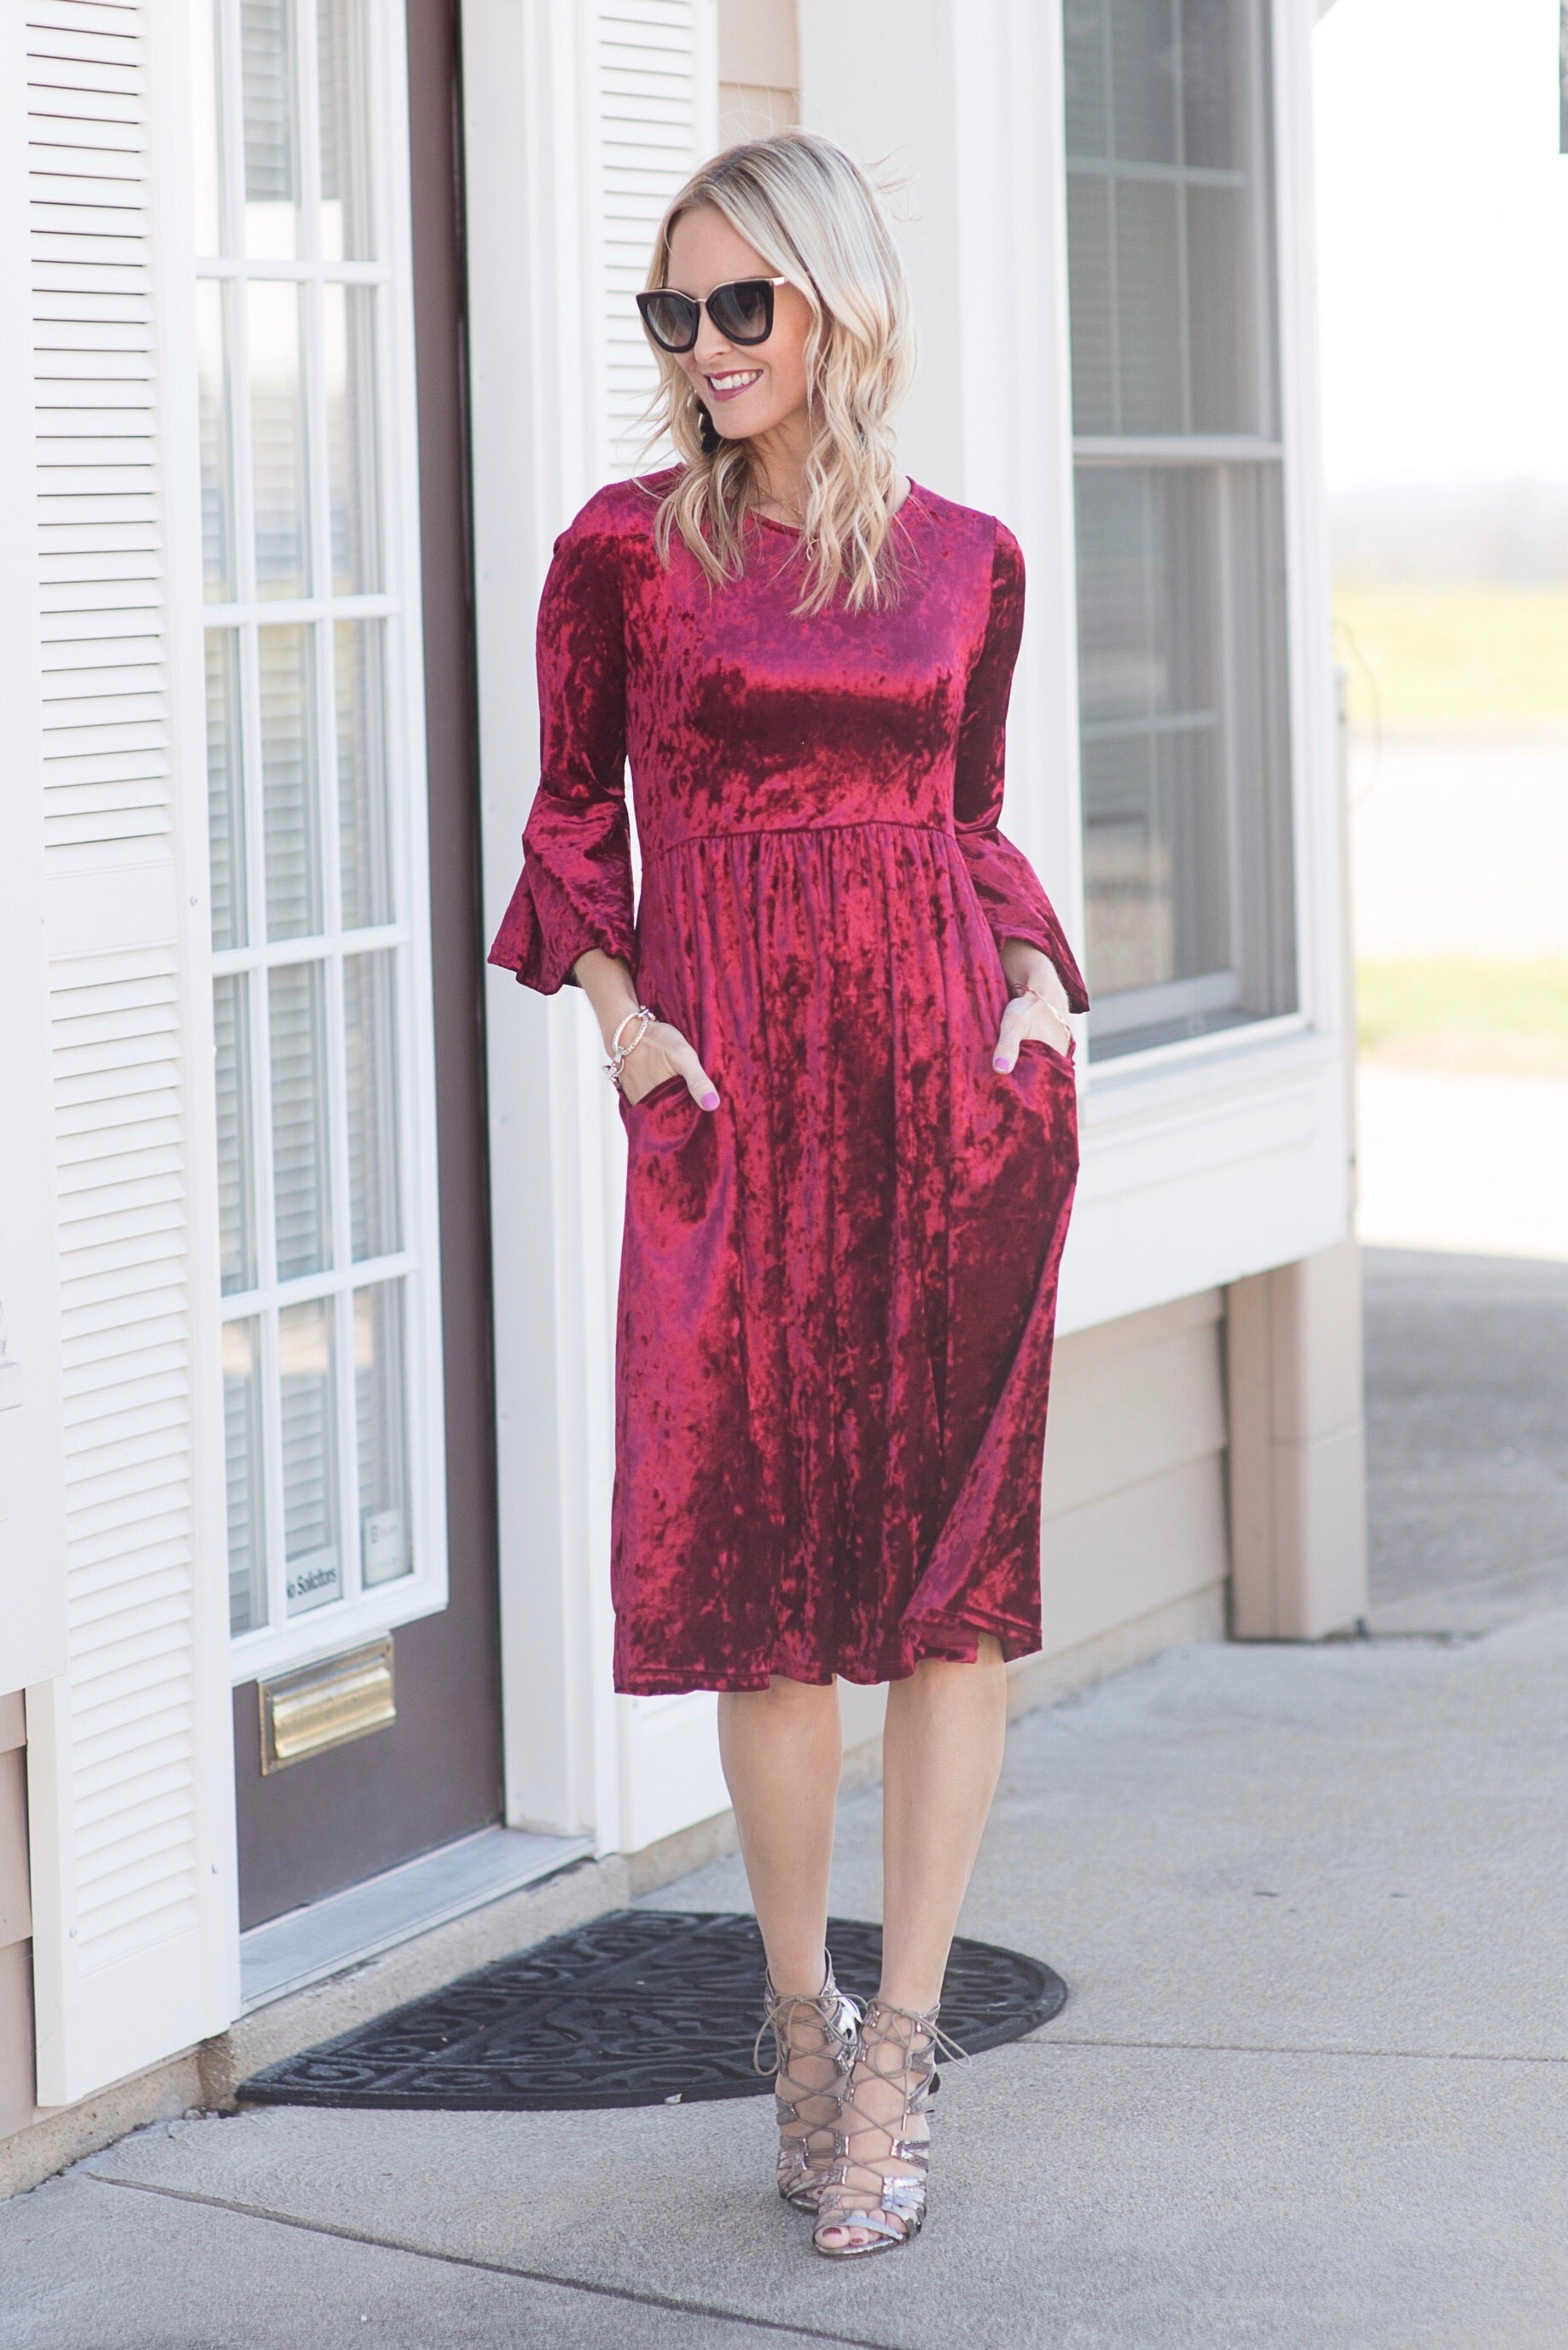 992ff167d95 Maren Crushed Red Velvet Midi Dress